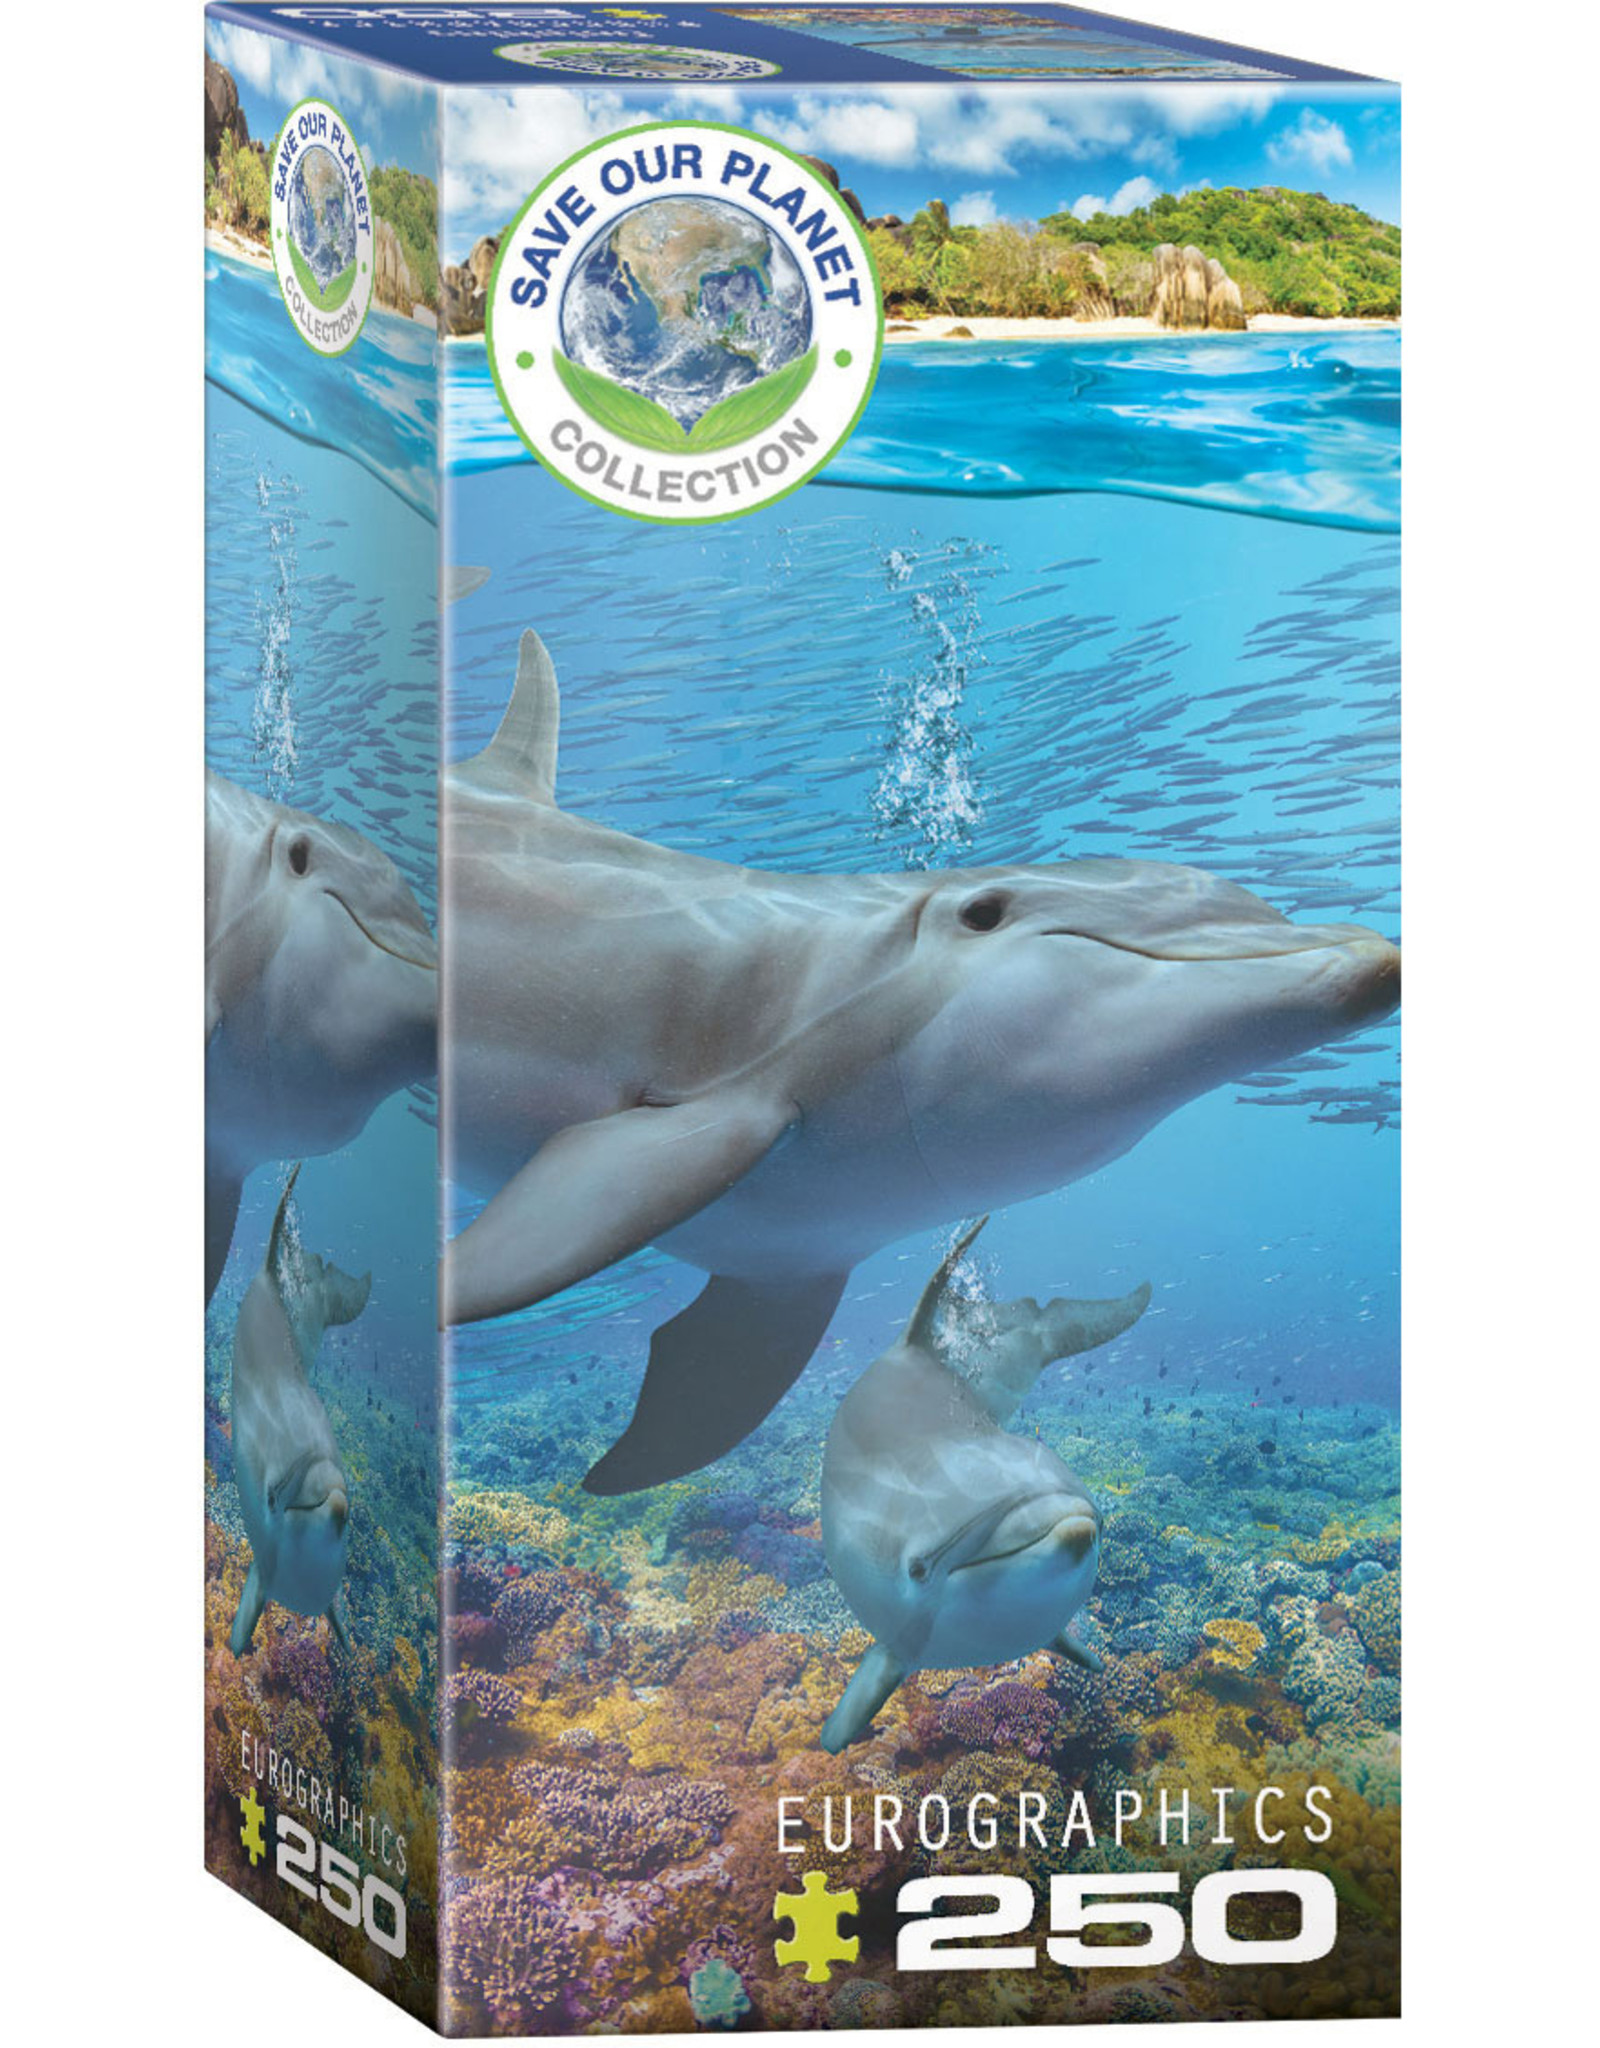 SAVE OUR PLANET DOLPHINS 250 PIECE PUZZLE